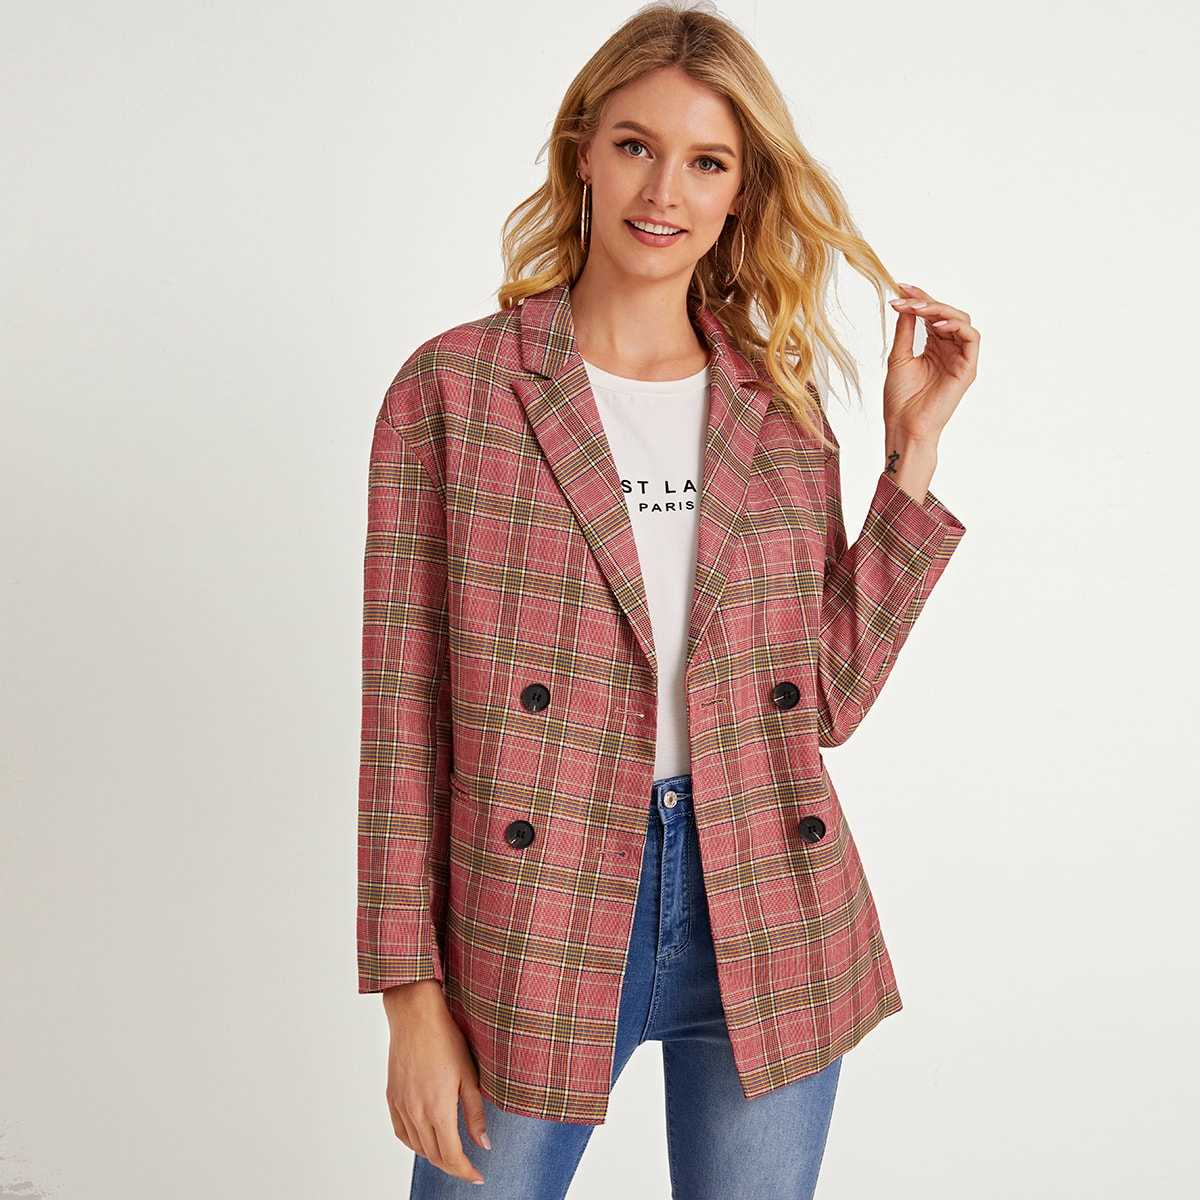 Plaid Lapel Collar Double Breasted Blazer in Red by ROMWE on GOOFASH